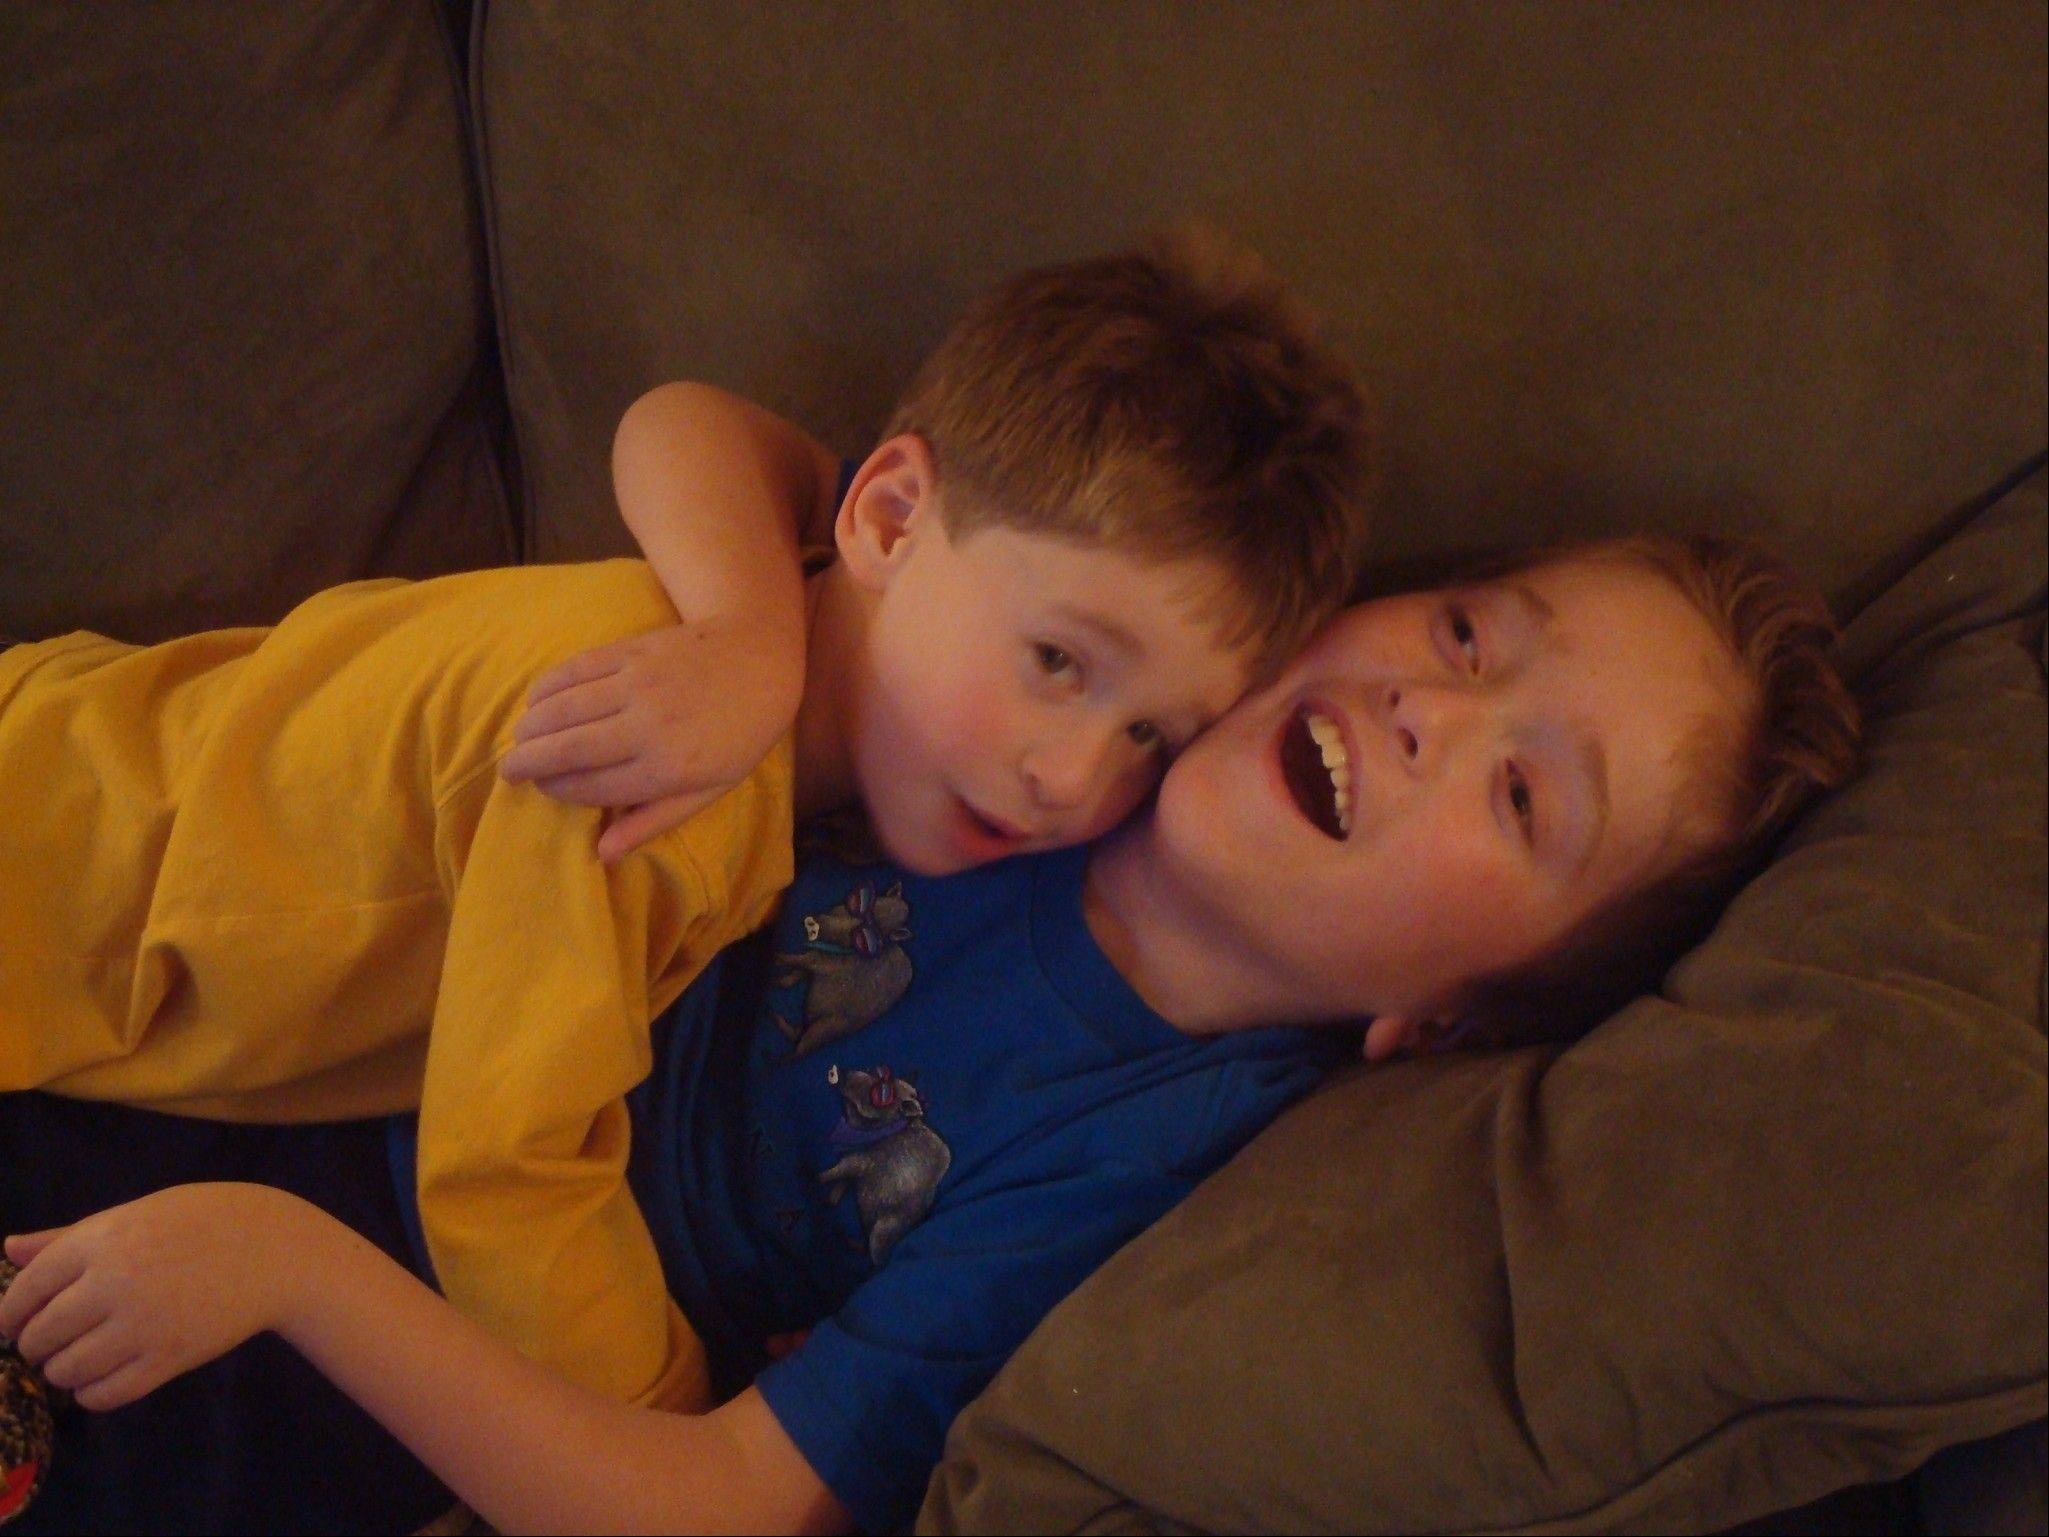 As younger boys, Alex, left, and Max Randell would lie together on the couch. Now a 10-year-old wrestler, Alex, remains gentle with his 15-year-old brother who has a rare disease that robs him of most movement and the ability to speak.